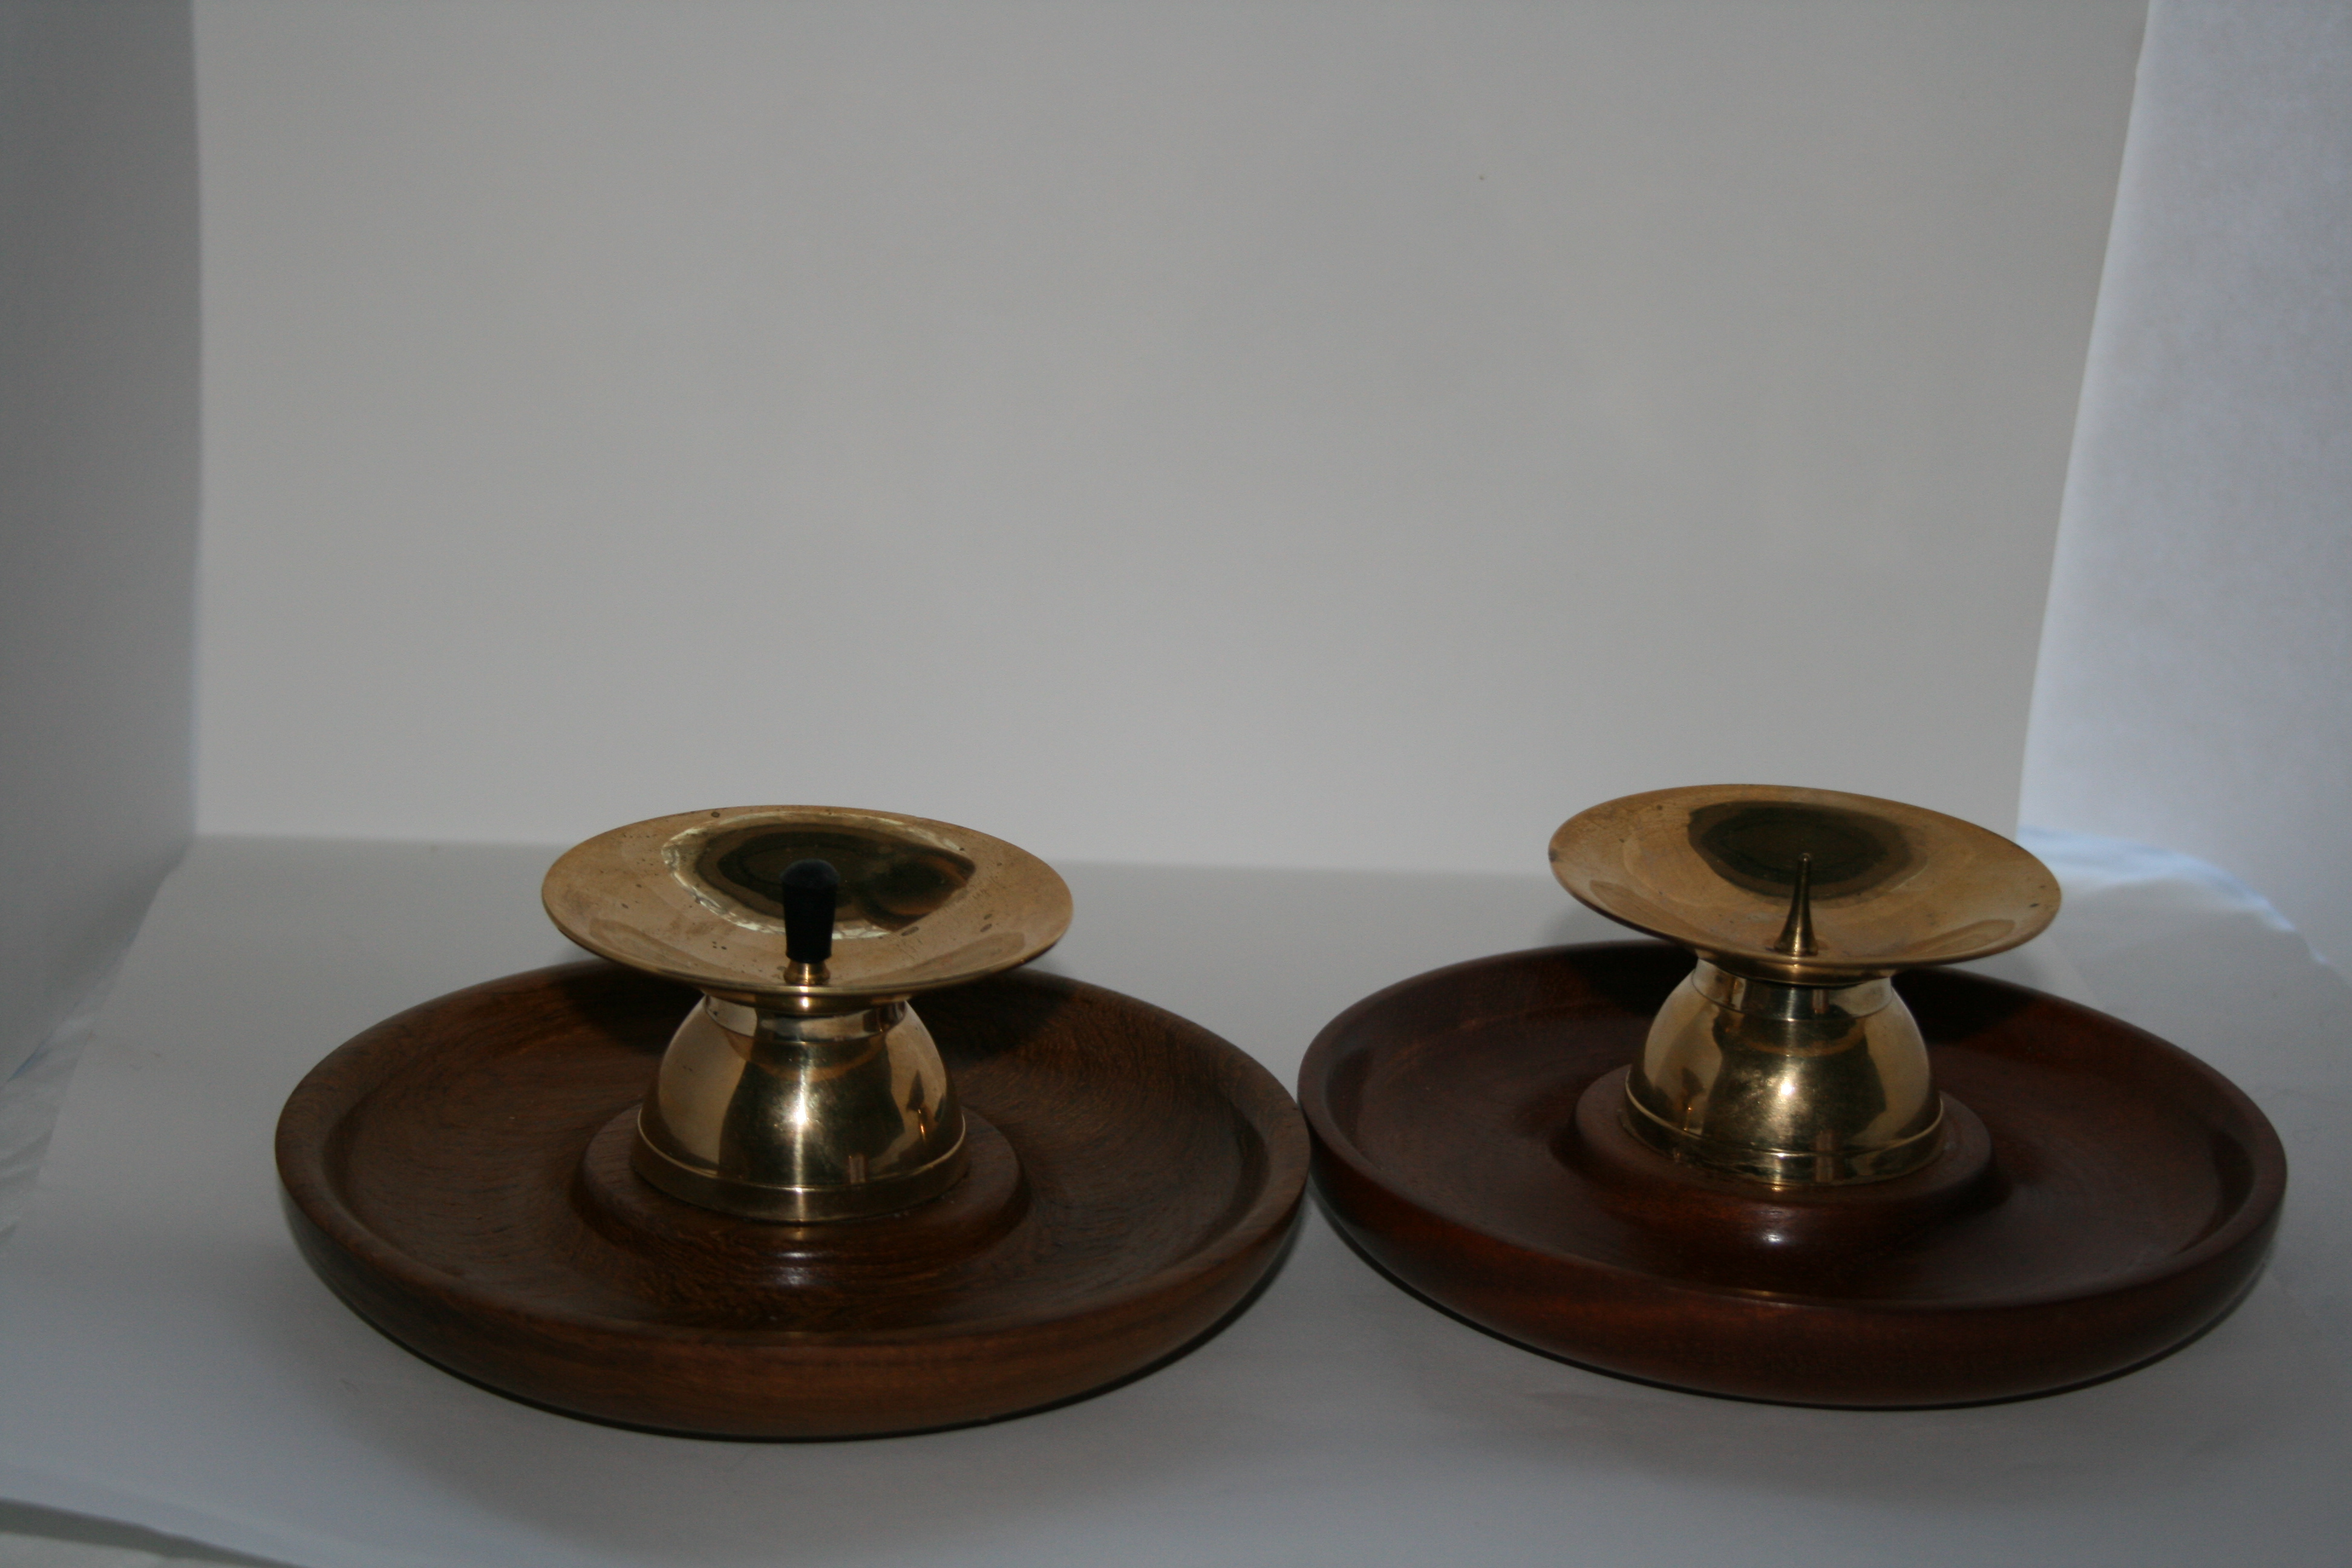 Candle brass spike on Mahogany round base